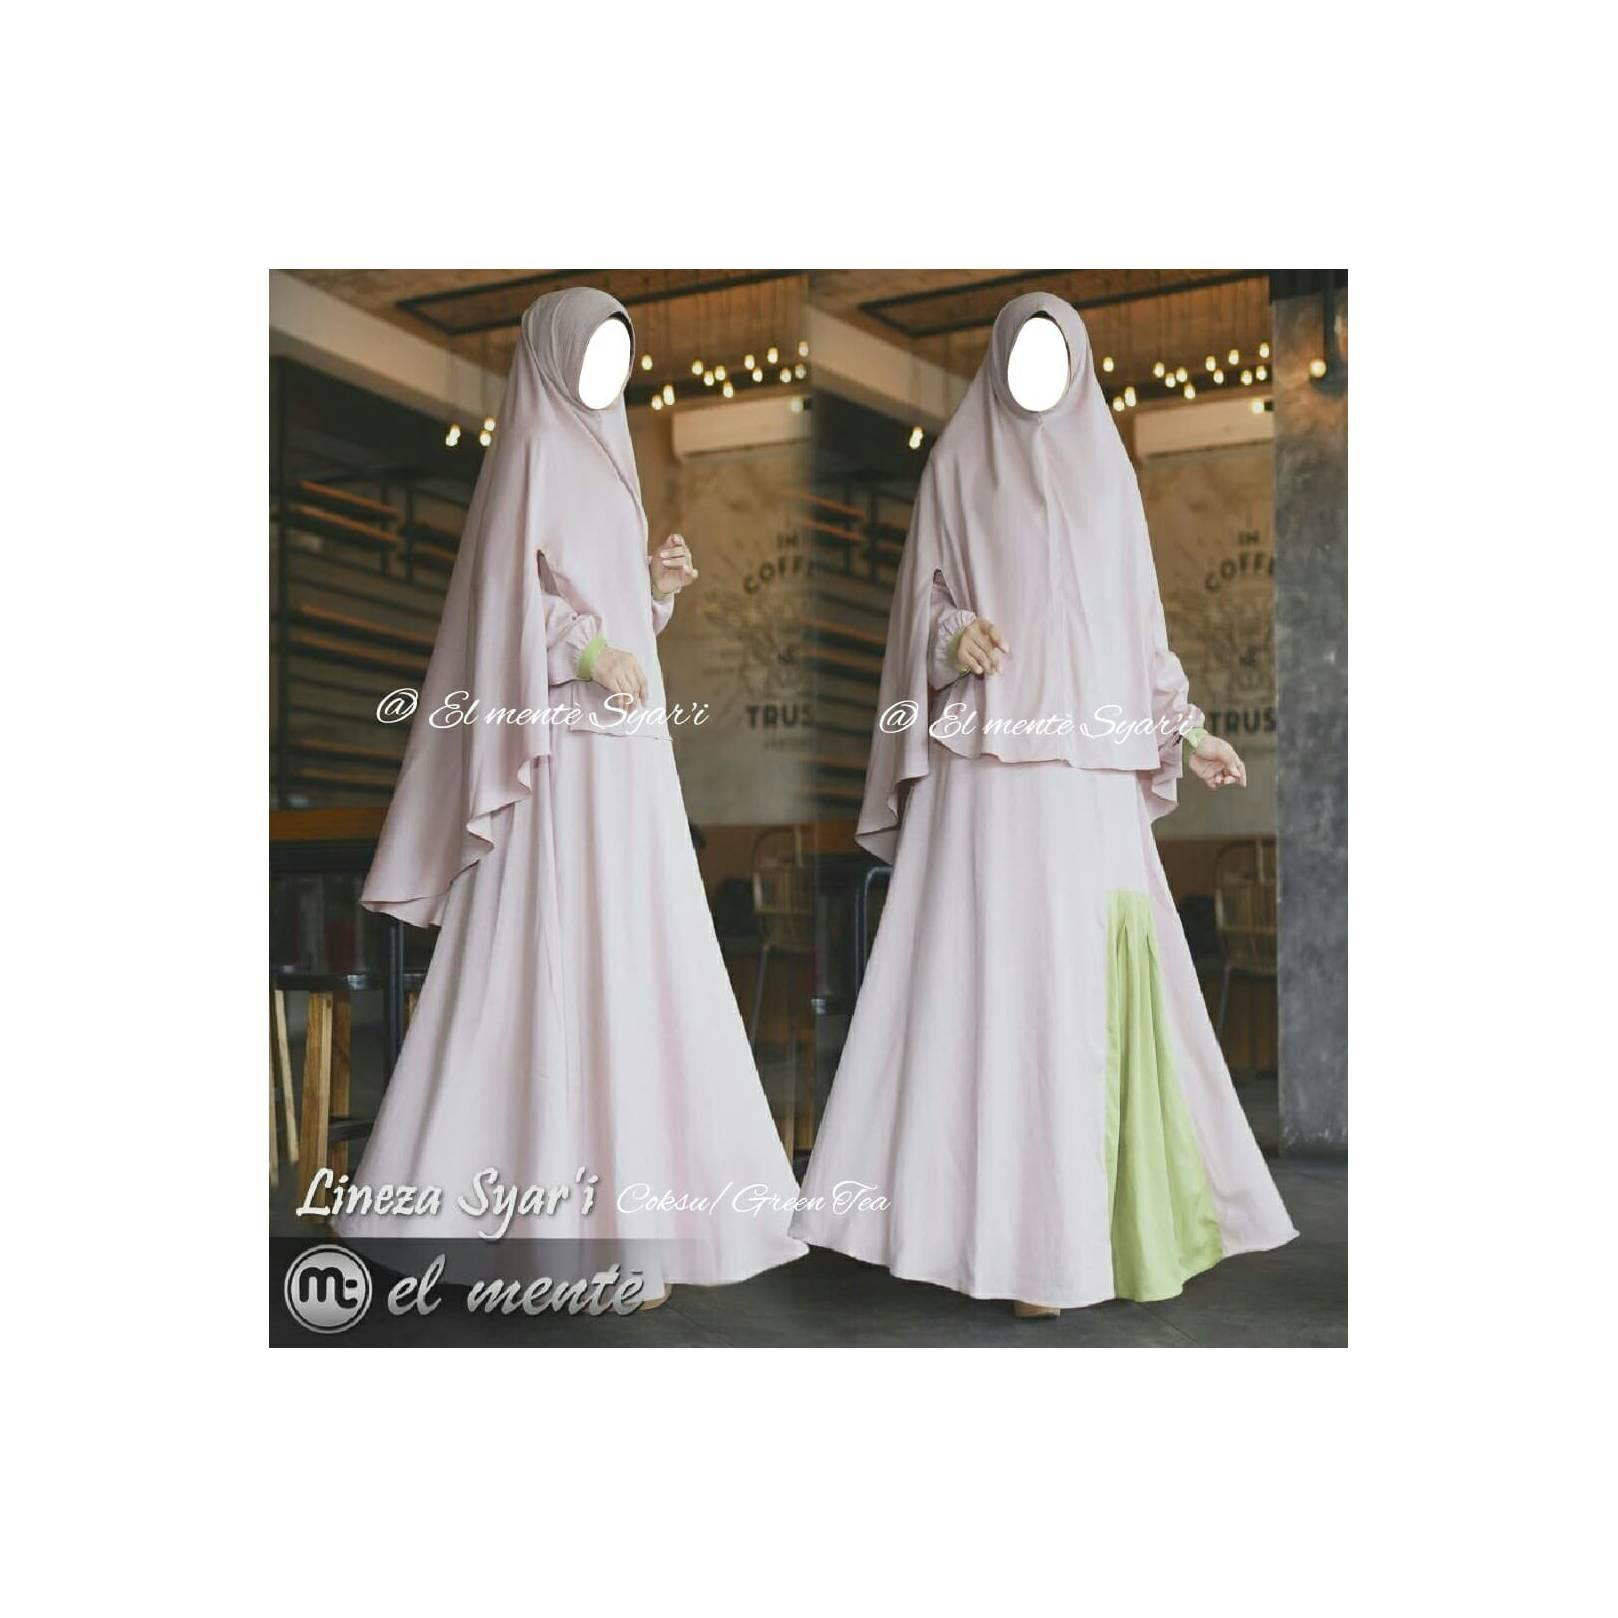 Gamis Set Lineza Syari By Elmente Coksu Green Tea